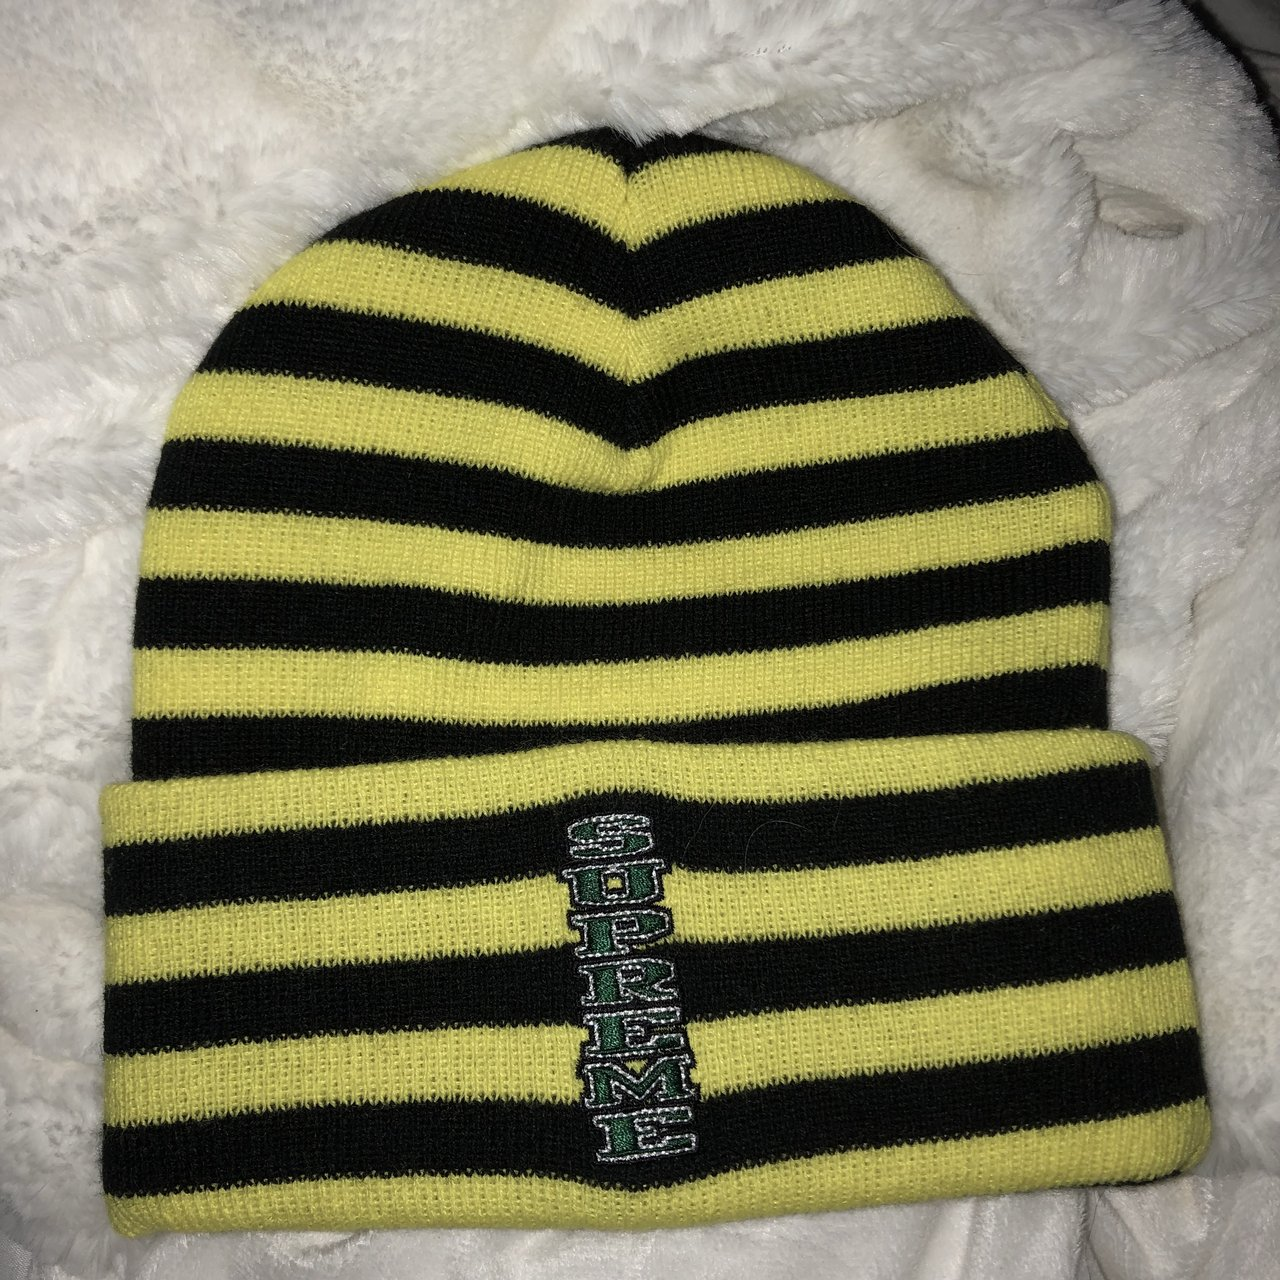 rare supreme beanie neon yellow and black striped with n - Depop 047c2a2df06